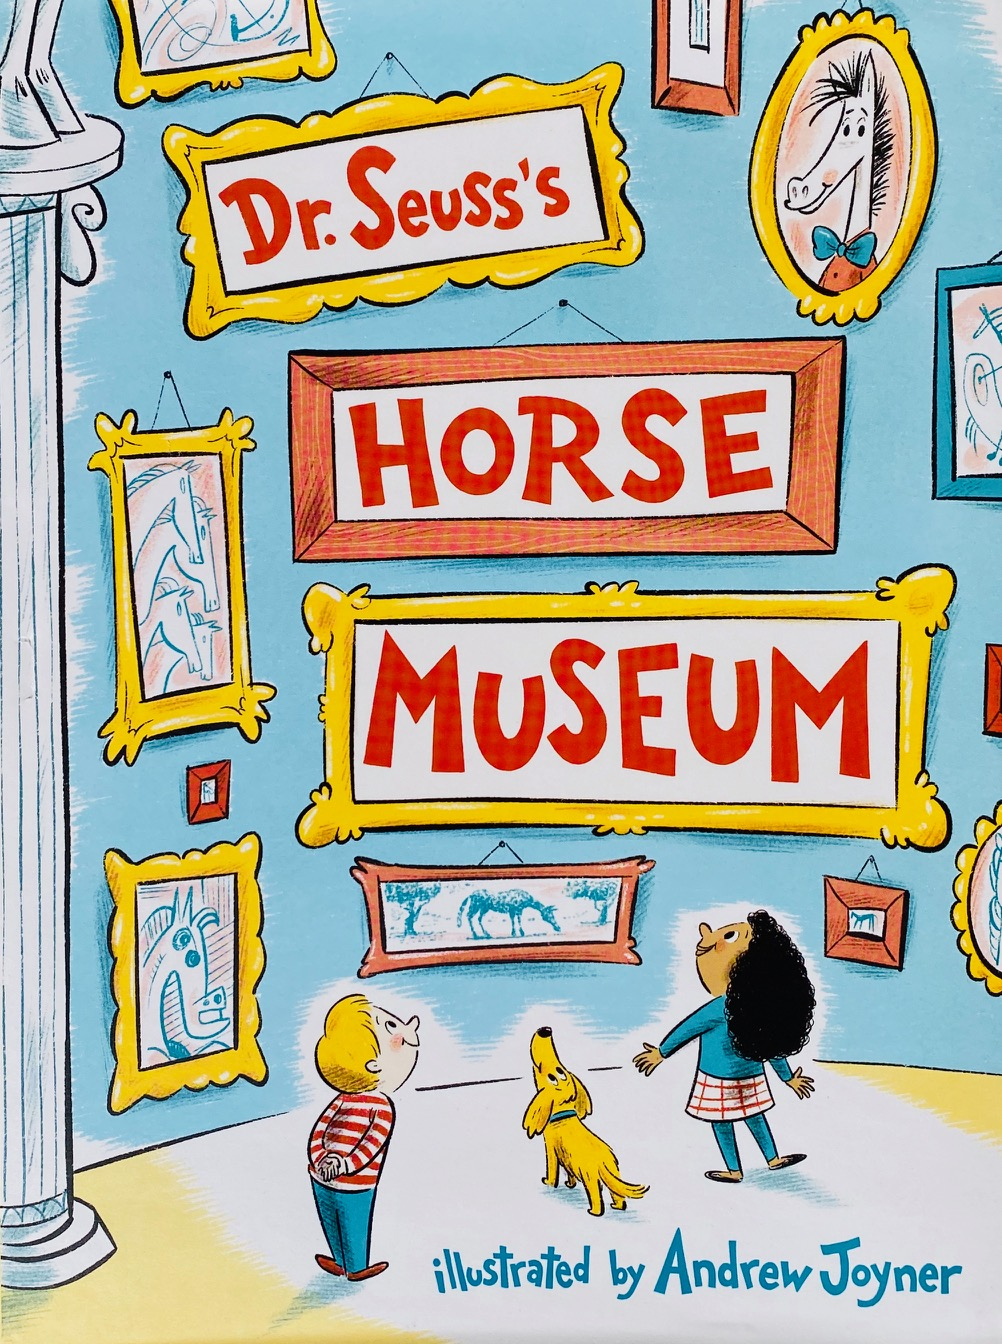 children's art book about representations of horses in art throughout history